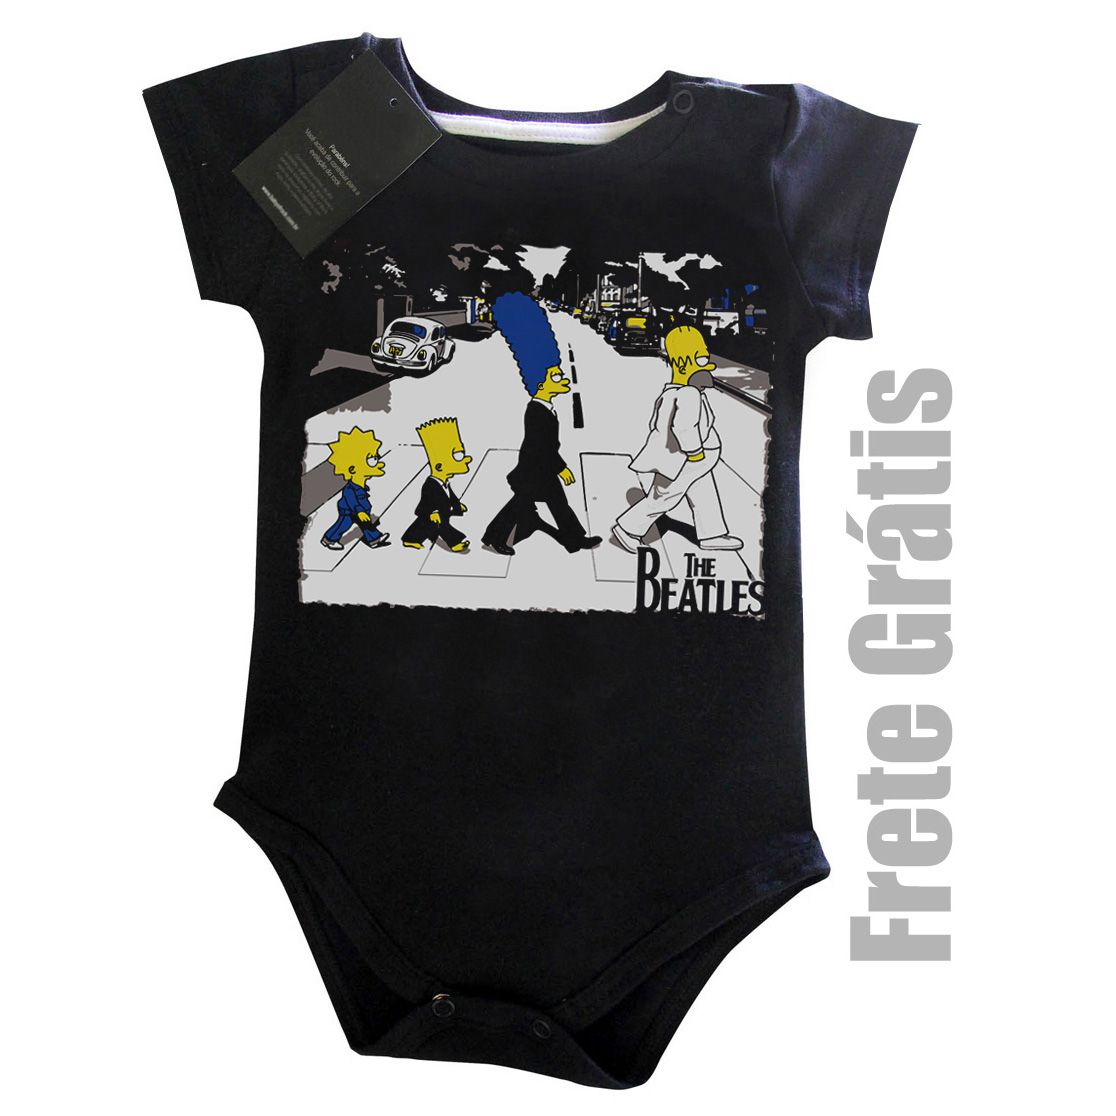 Body Rock - The Beatles Simpsons  - Black  - Baby Monster S/A